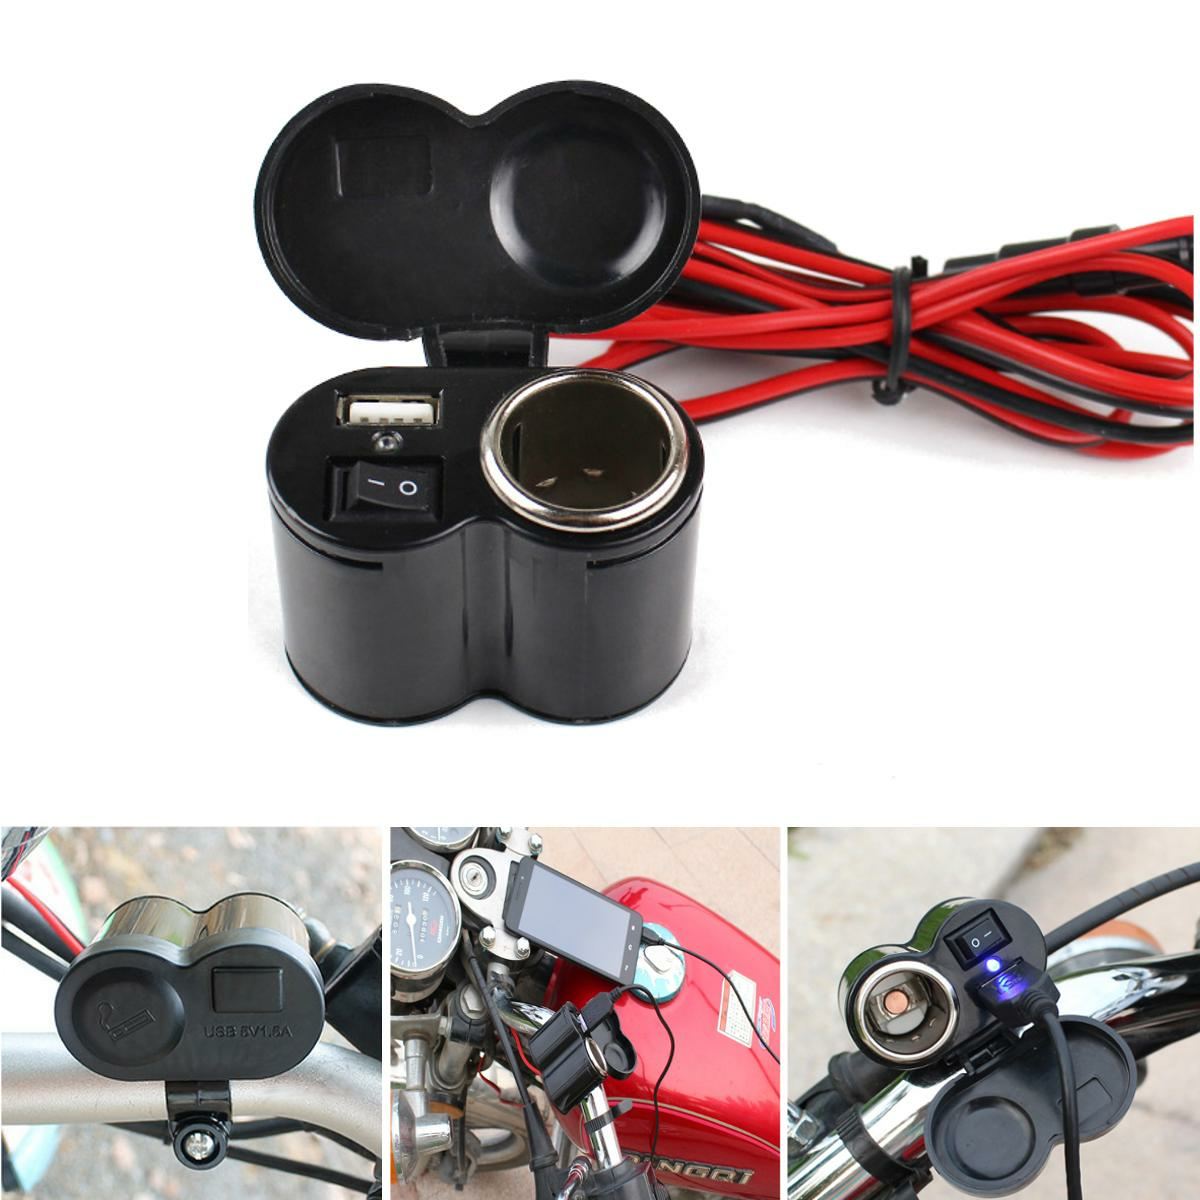 12V-24V Motorcycle E-bike USB Charger Socket with ON-OFF Button